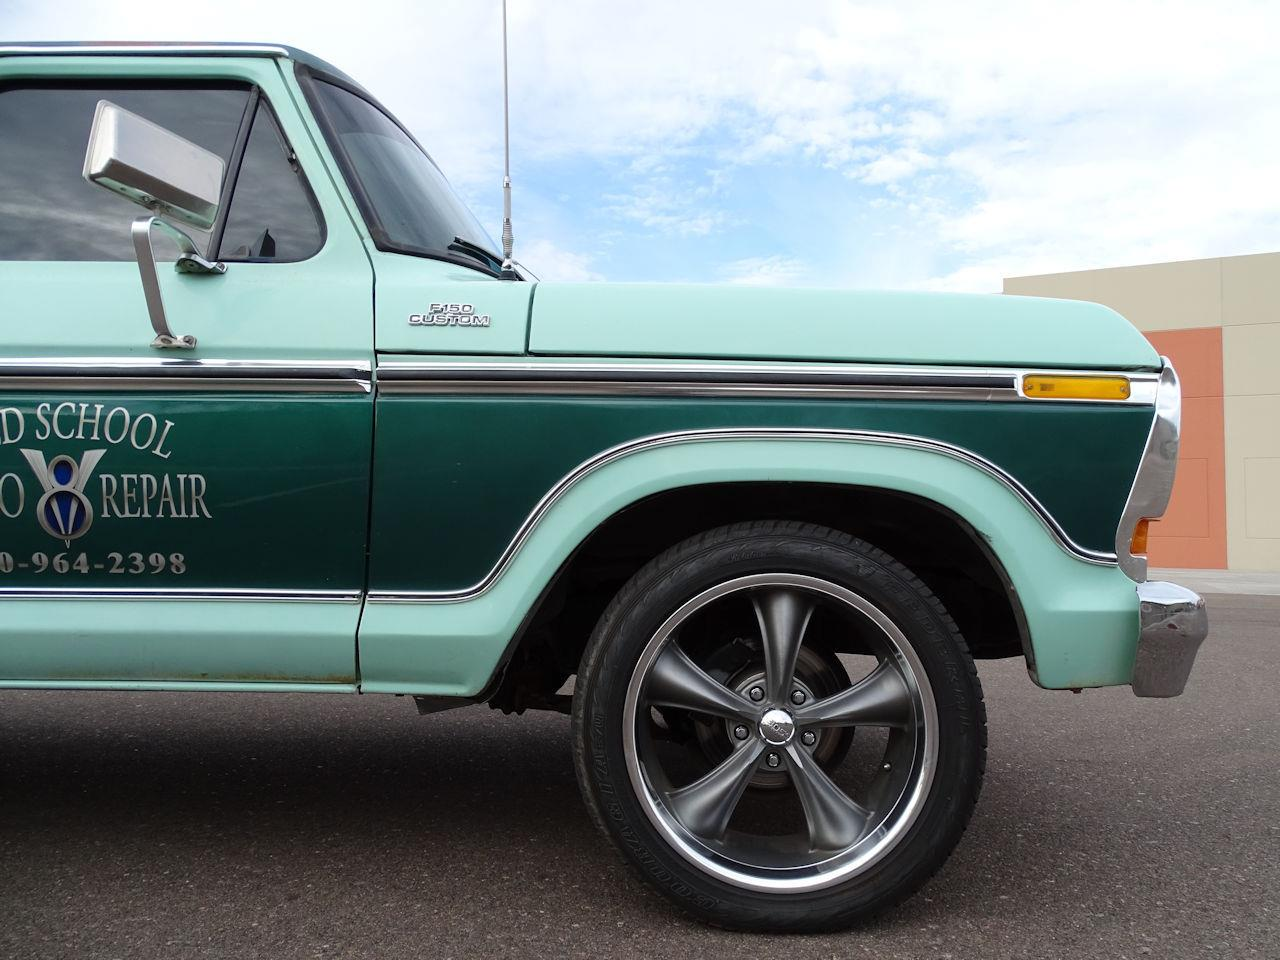 Large Picture of '78 Ford F150 located in Deer Valley Arizona - $17,995.00 - MEMV